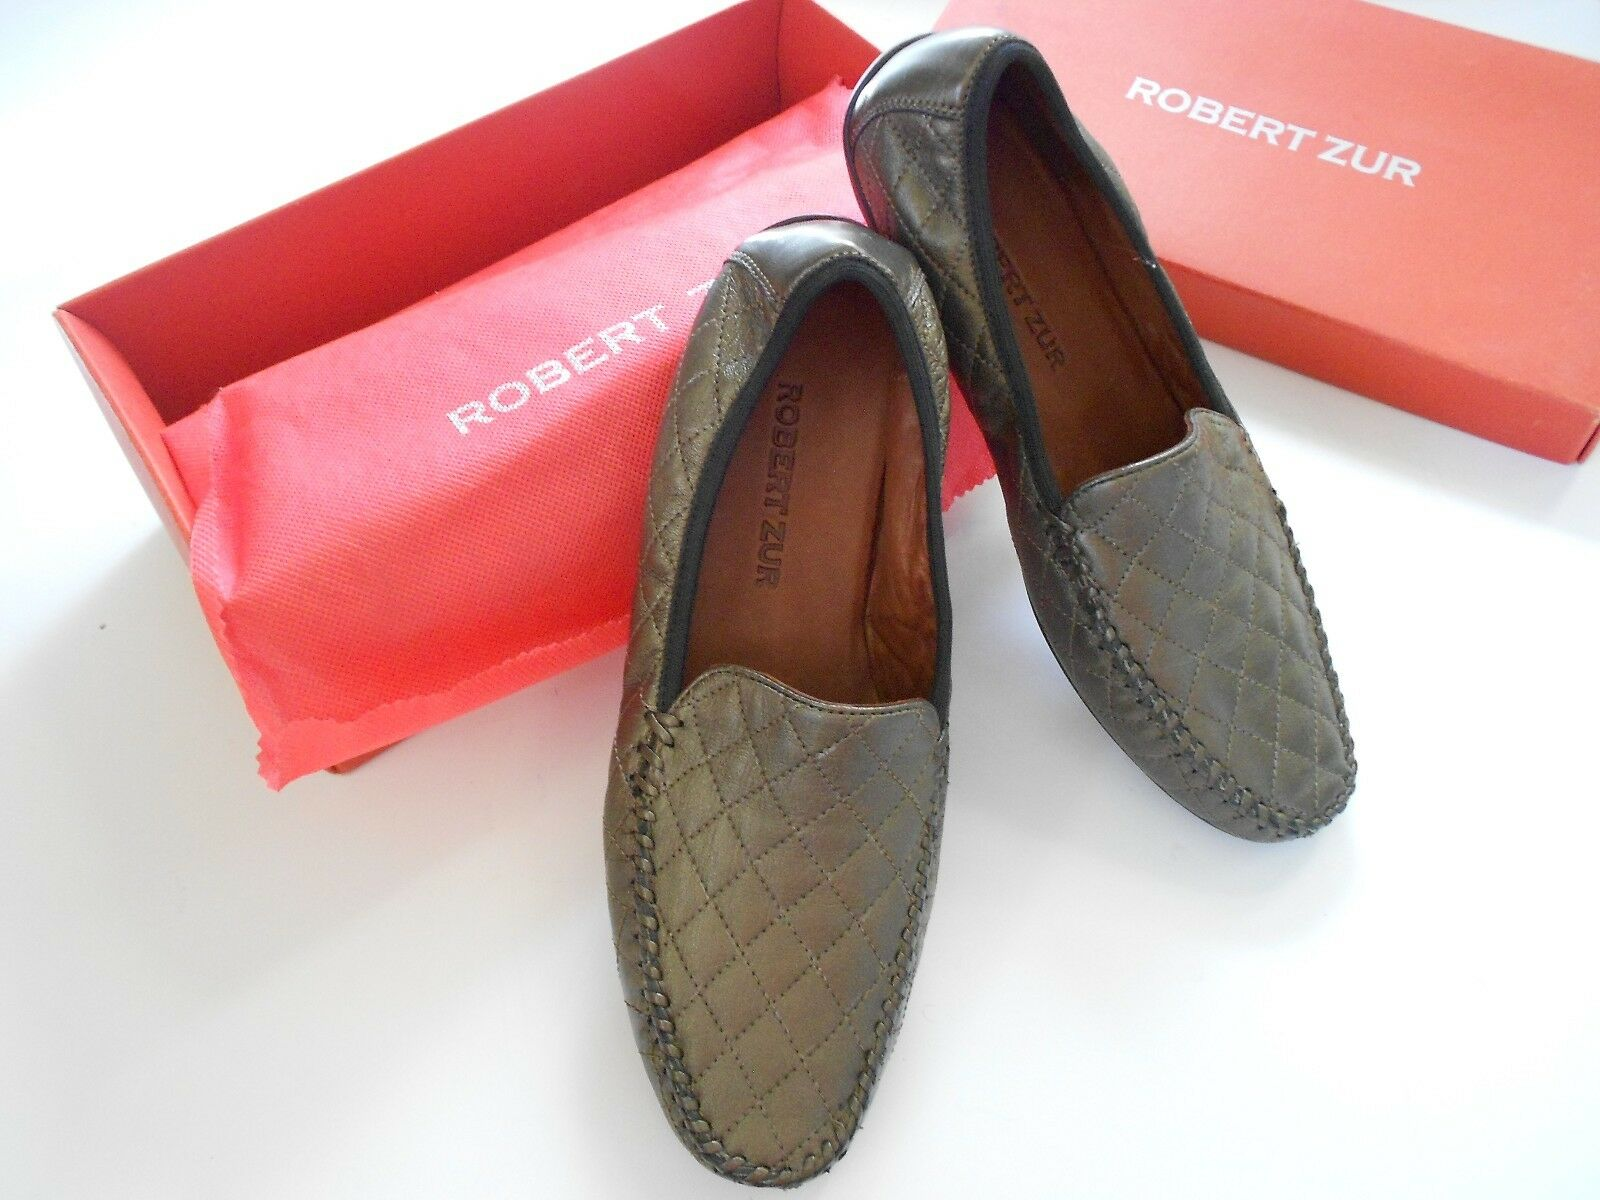 GORGEOUS QUILTED 10.5 C ROBERT ZUR BRONZE LEATHER LOAFER DRIVING chaussures  355 NWT